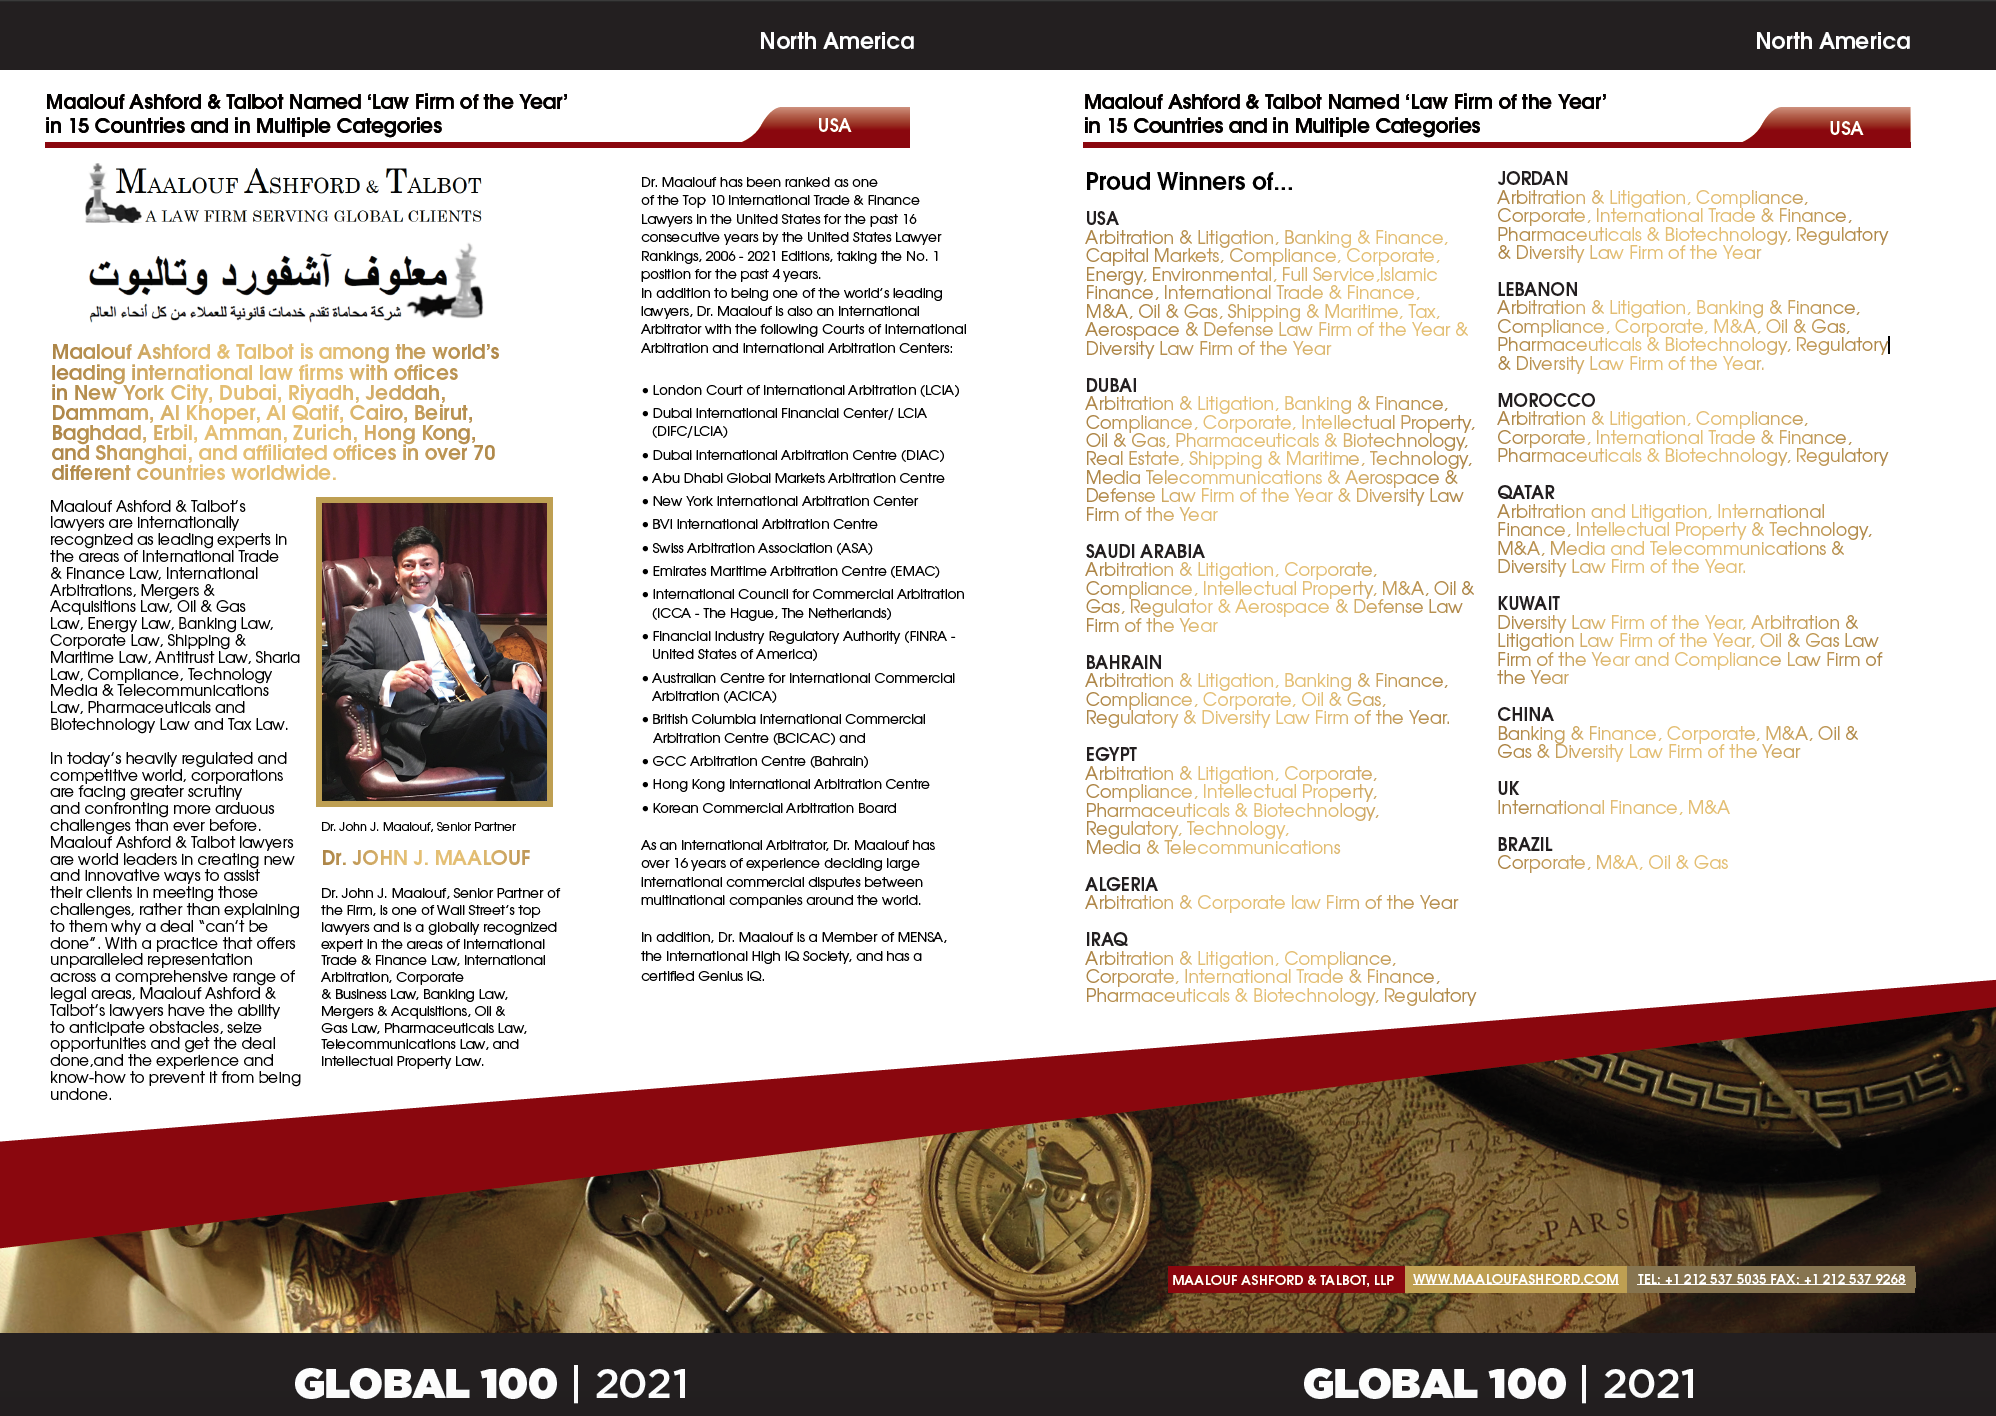 Maalouf Ashford & Talbot Has Been Named Law Firm of the Year for 2021 in 15 Countries